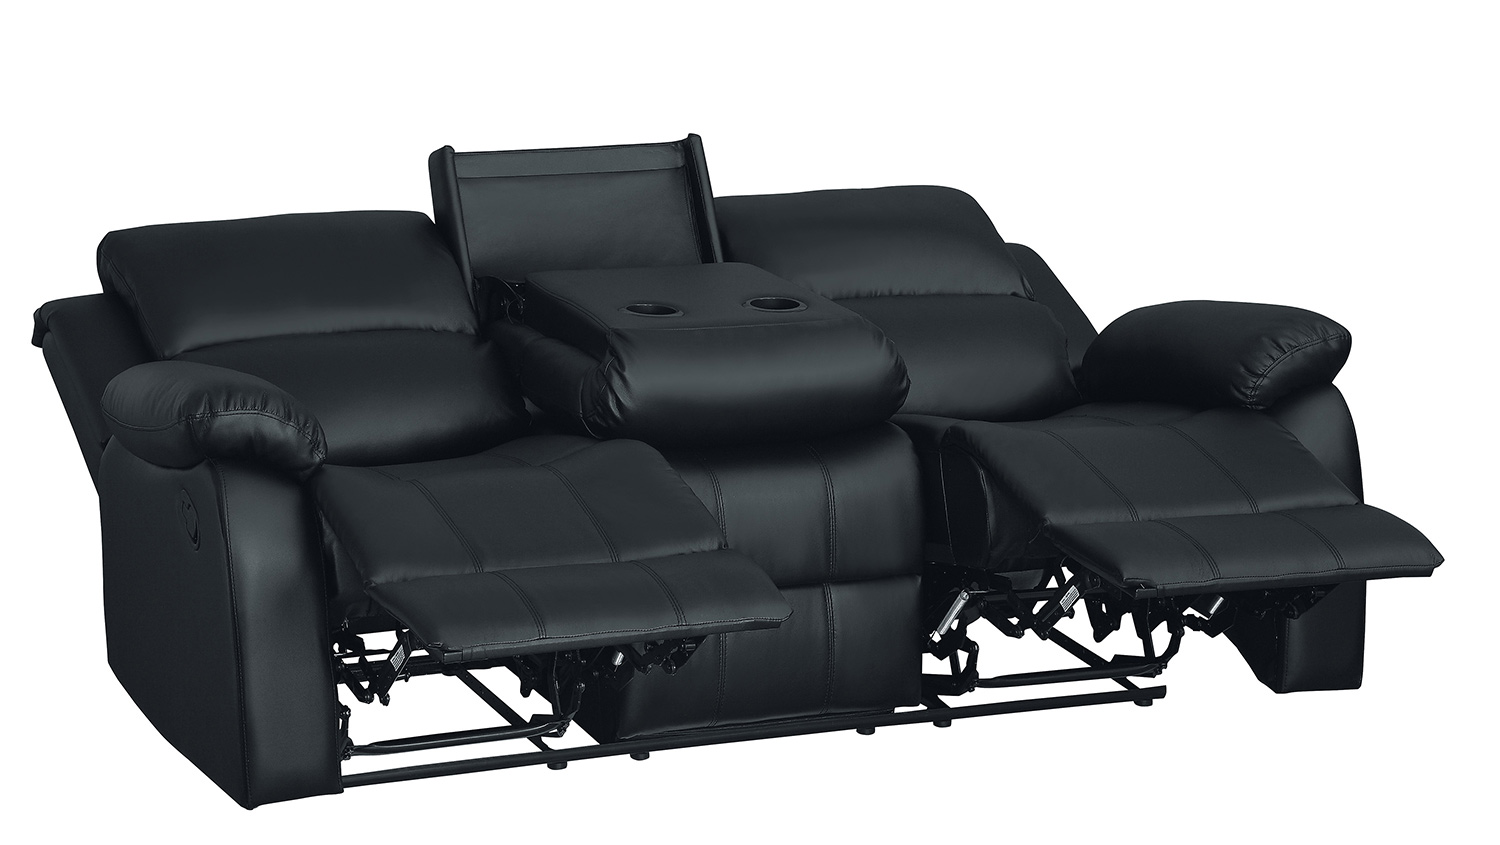 Homelegance Clarkdale Double Reclining Sofa With Center Drop-Down Cup Holders - Black